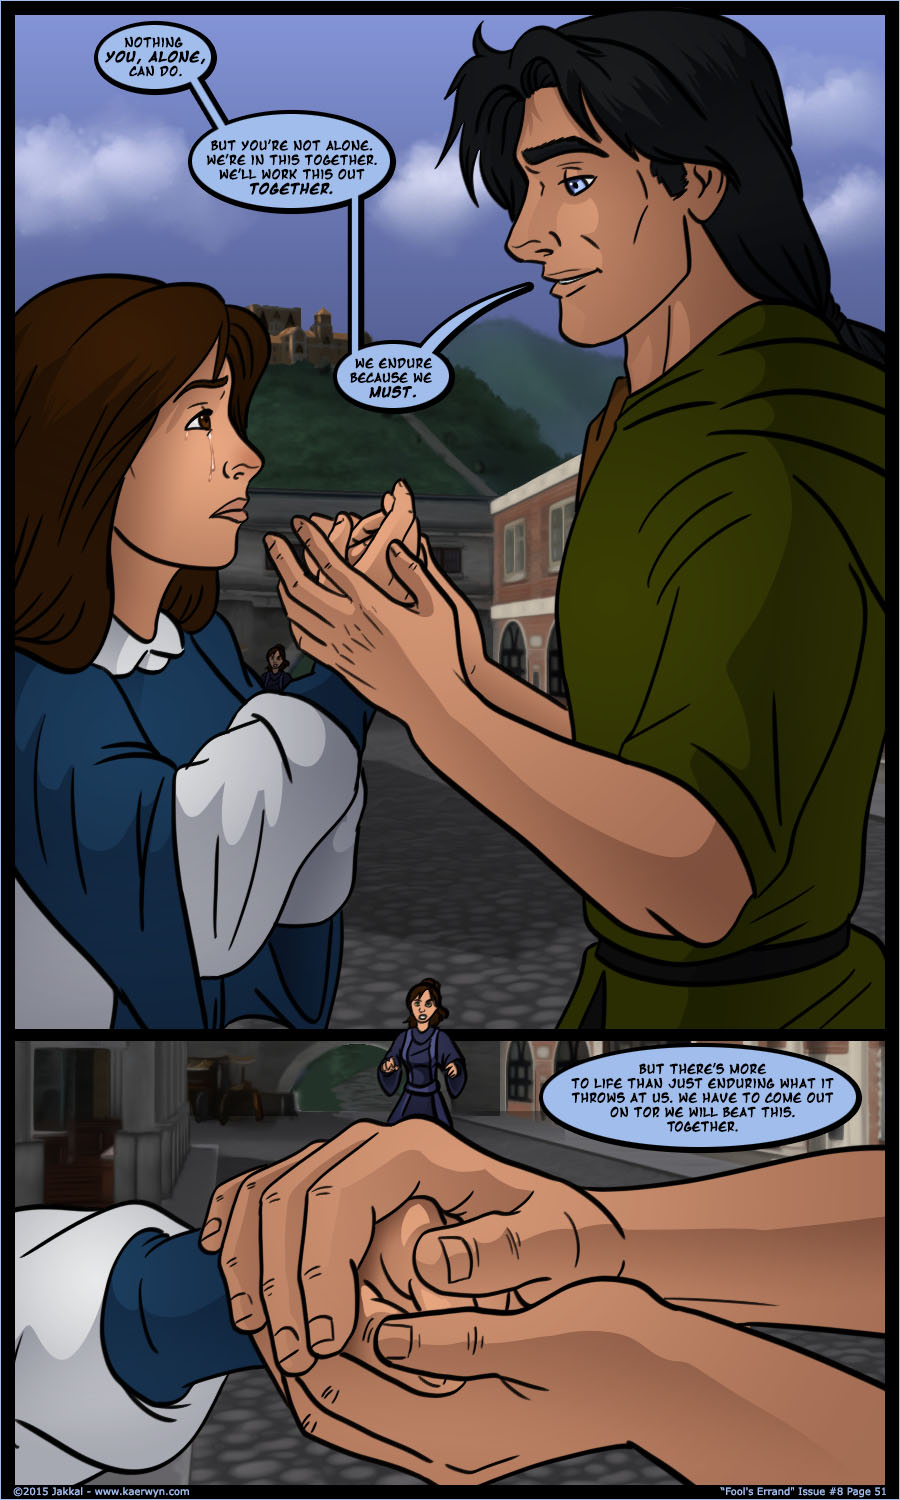 Issue 8 Page 51